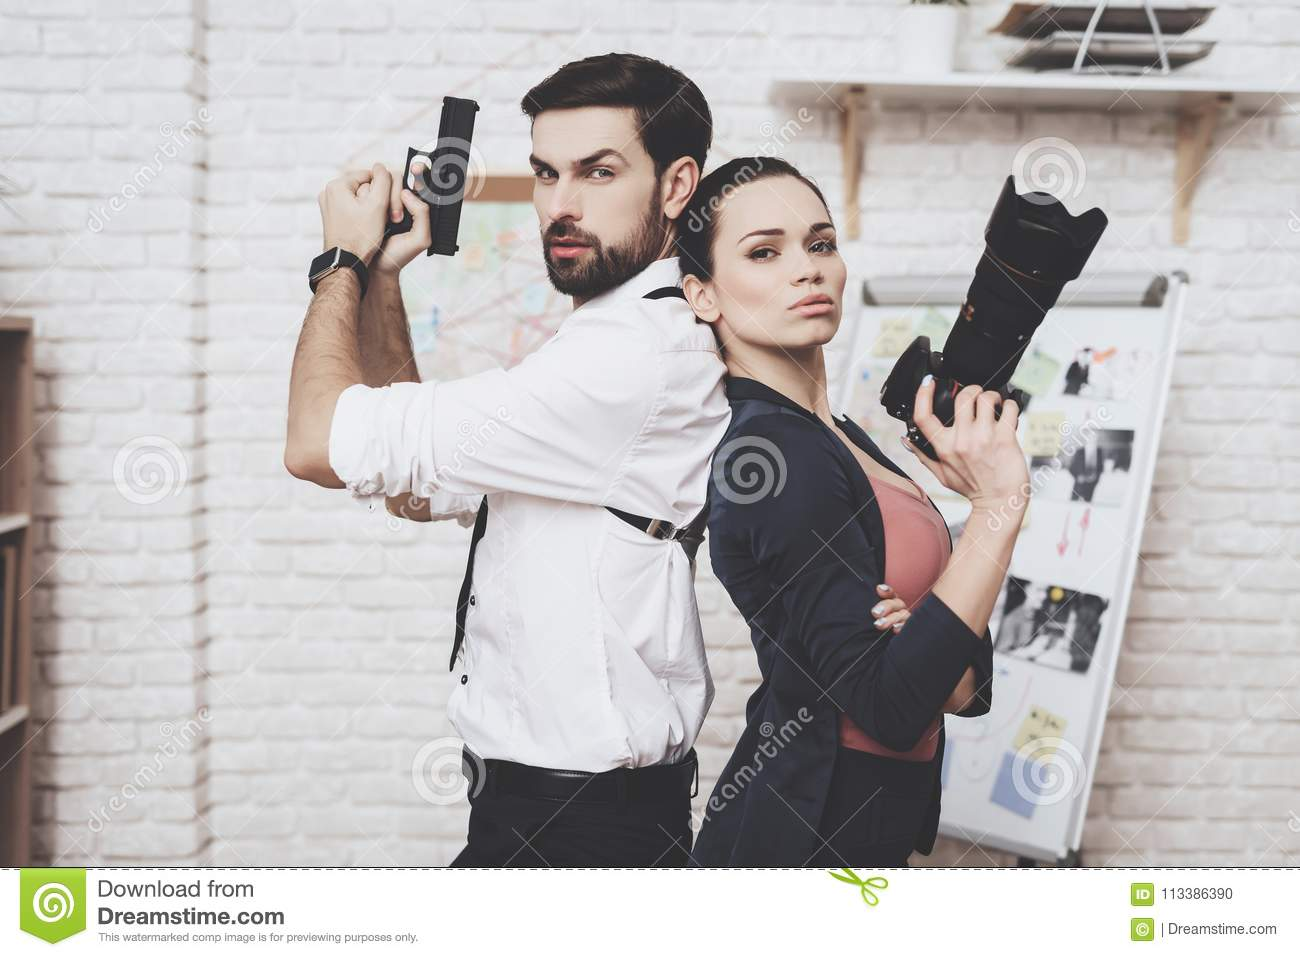 Private Detective Agency  Woman Is Posing With Camera, Man Is Posing